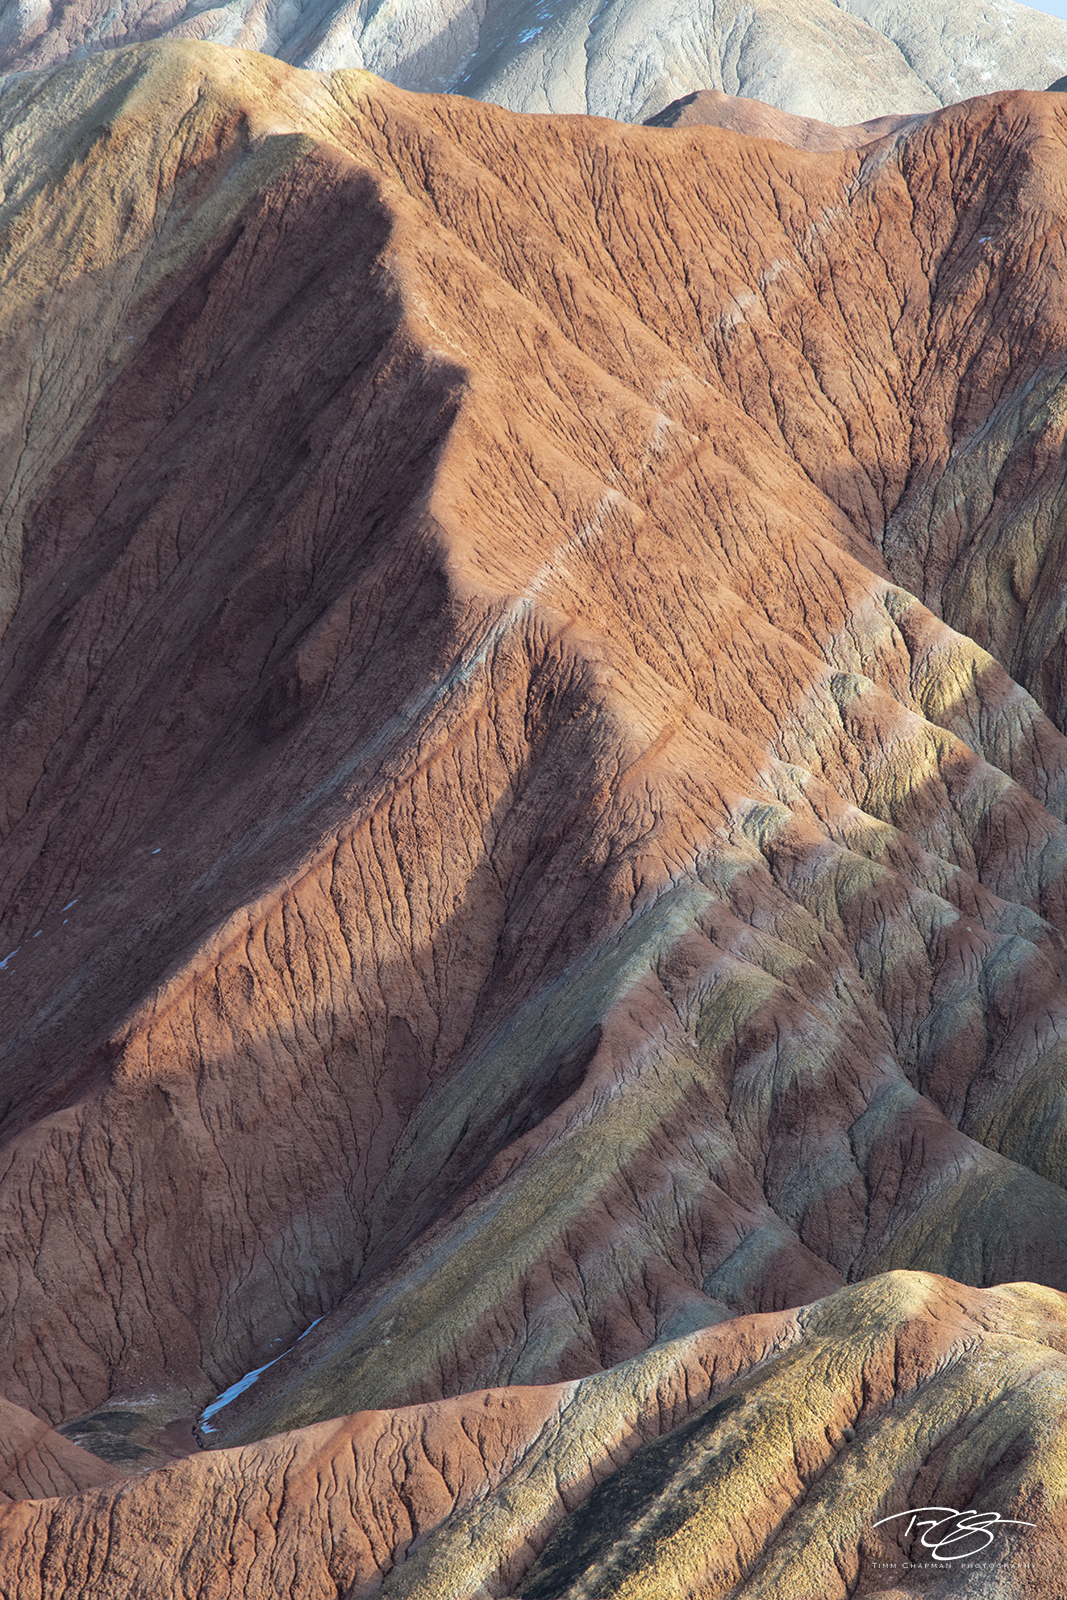 zhangye, danxia, landform, geological park, china, painted mountains, rock, stone, abstract, patterns, multi colour, multi color, stone, blanketed, draped, photo